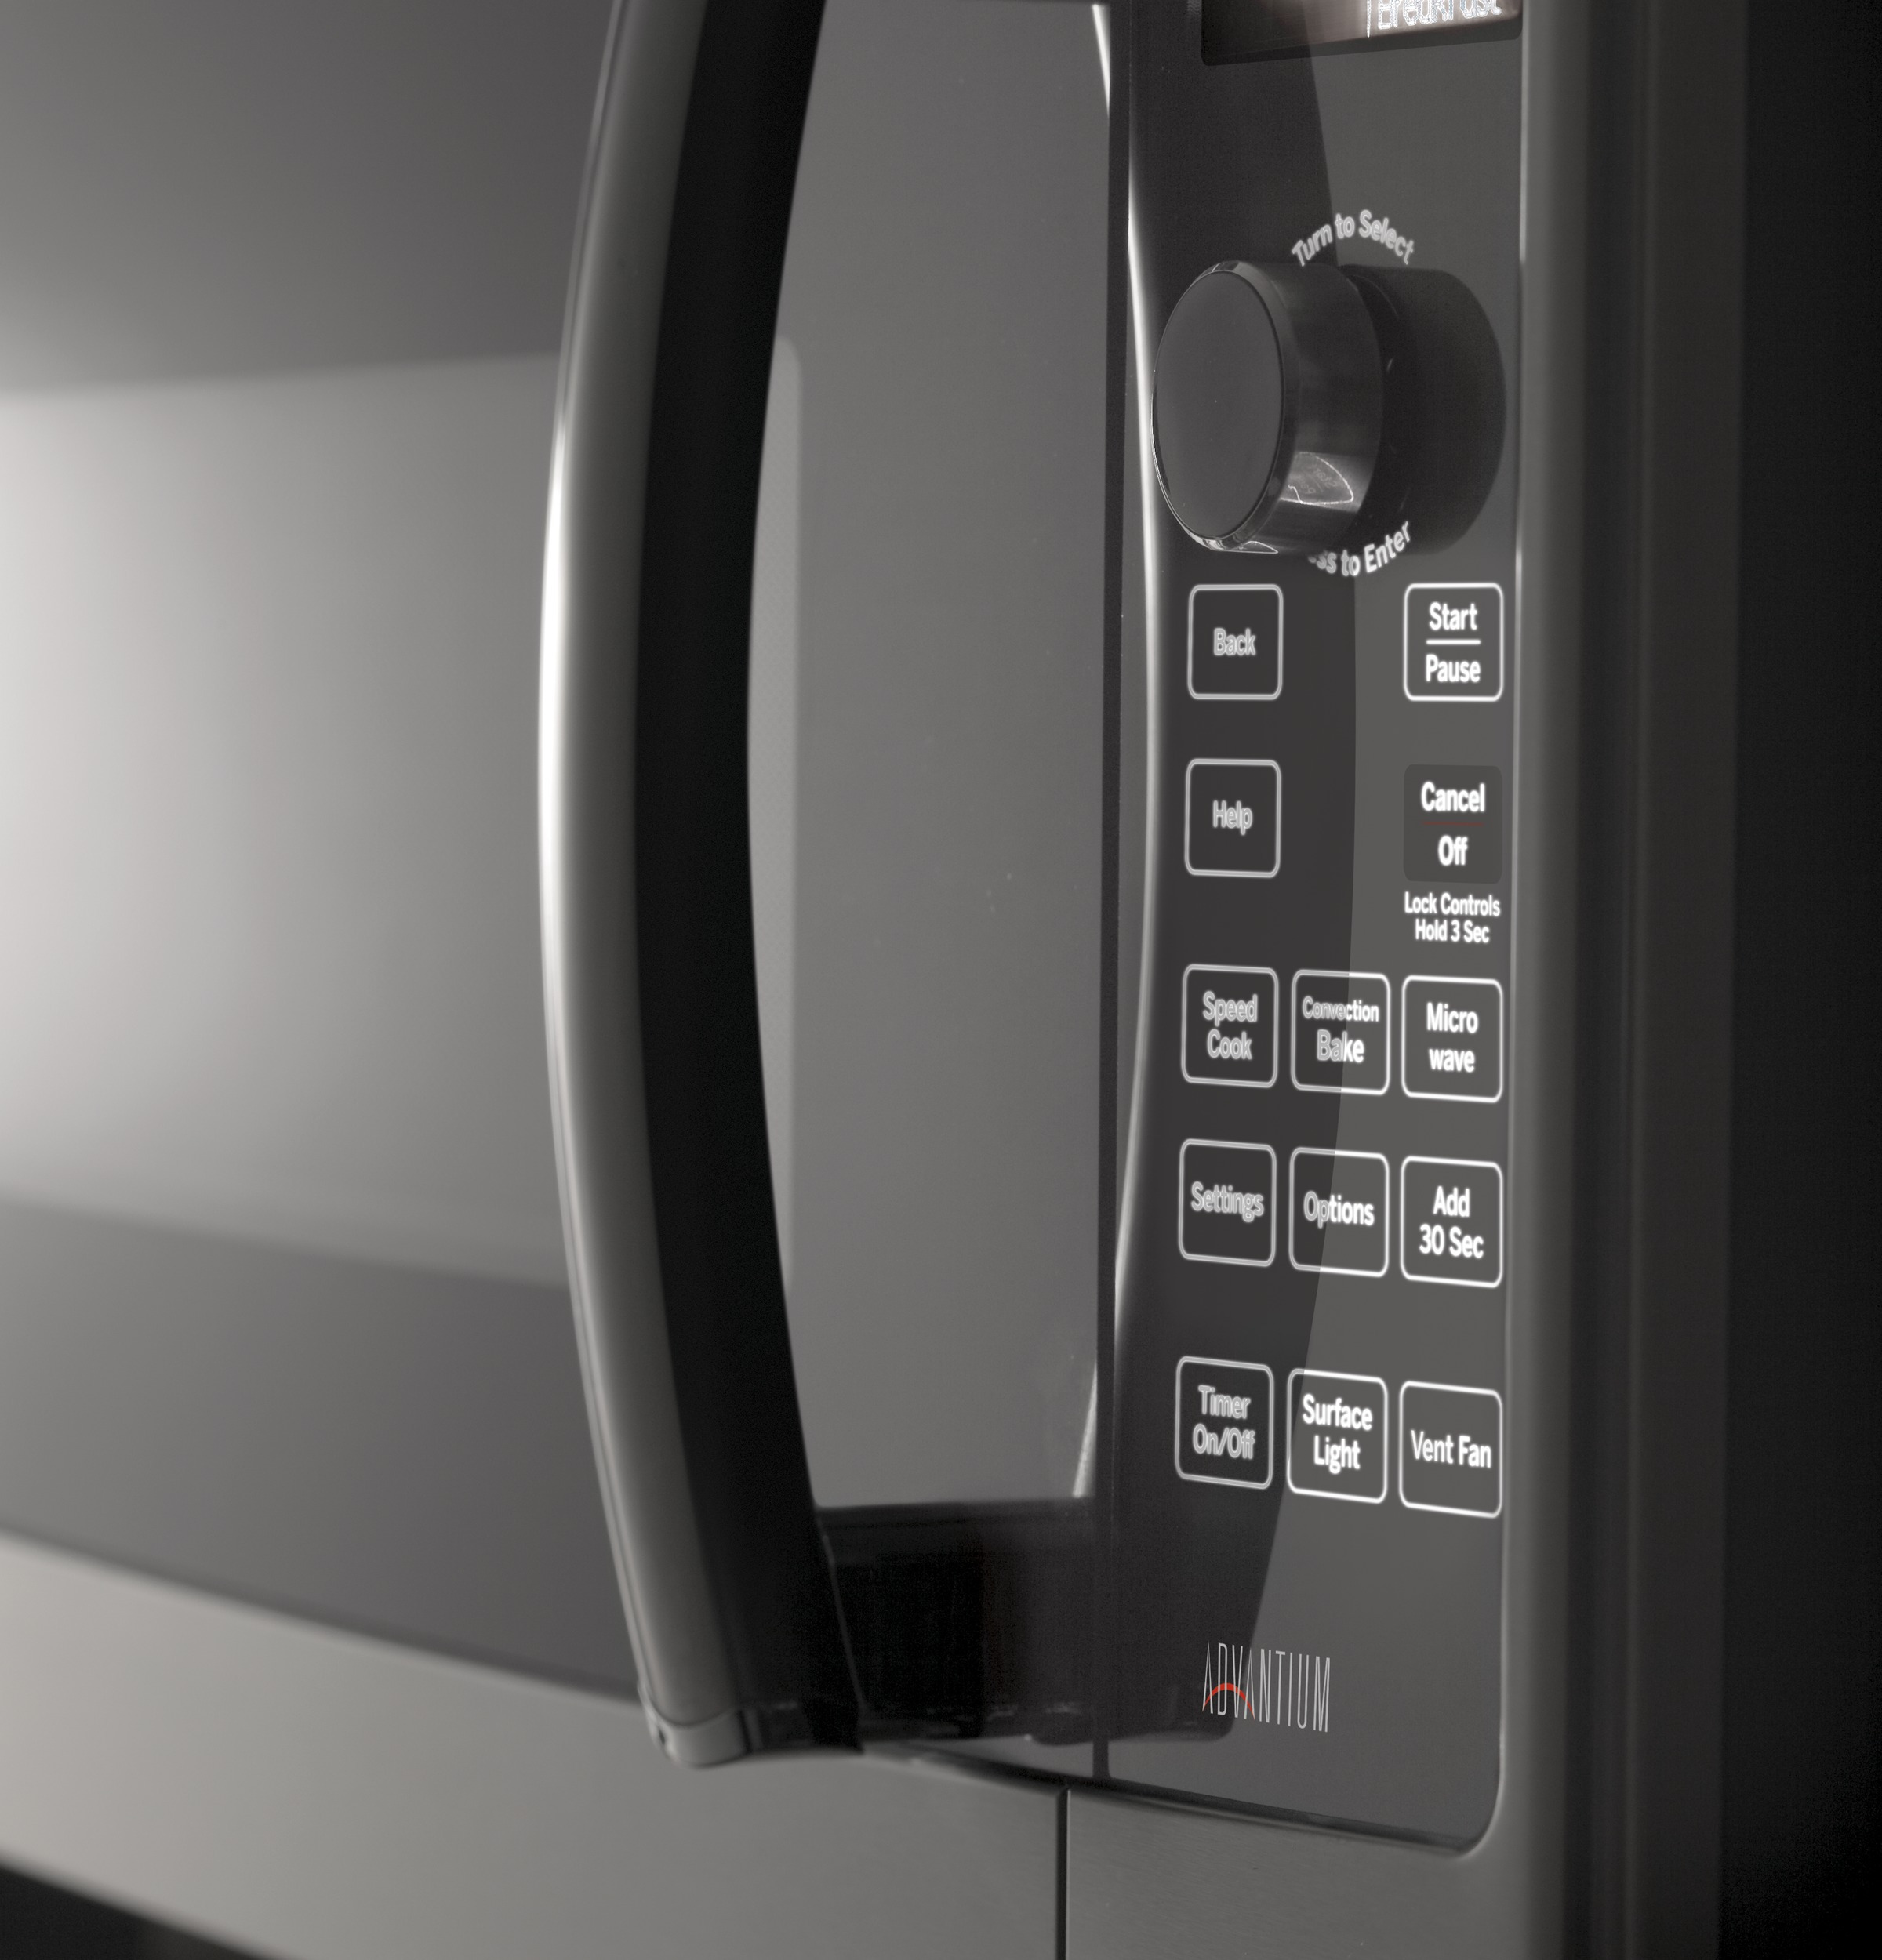 Model: PSA9240SPSS | GE Profile GE Profile™ Over-the-Range Oven with Advantium® Technology